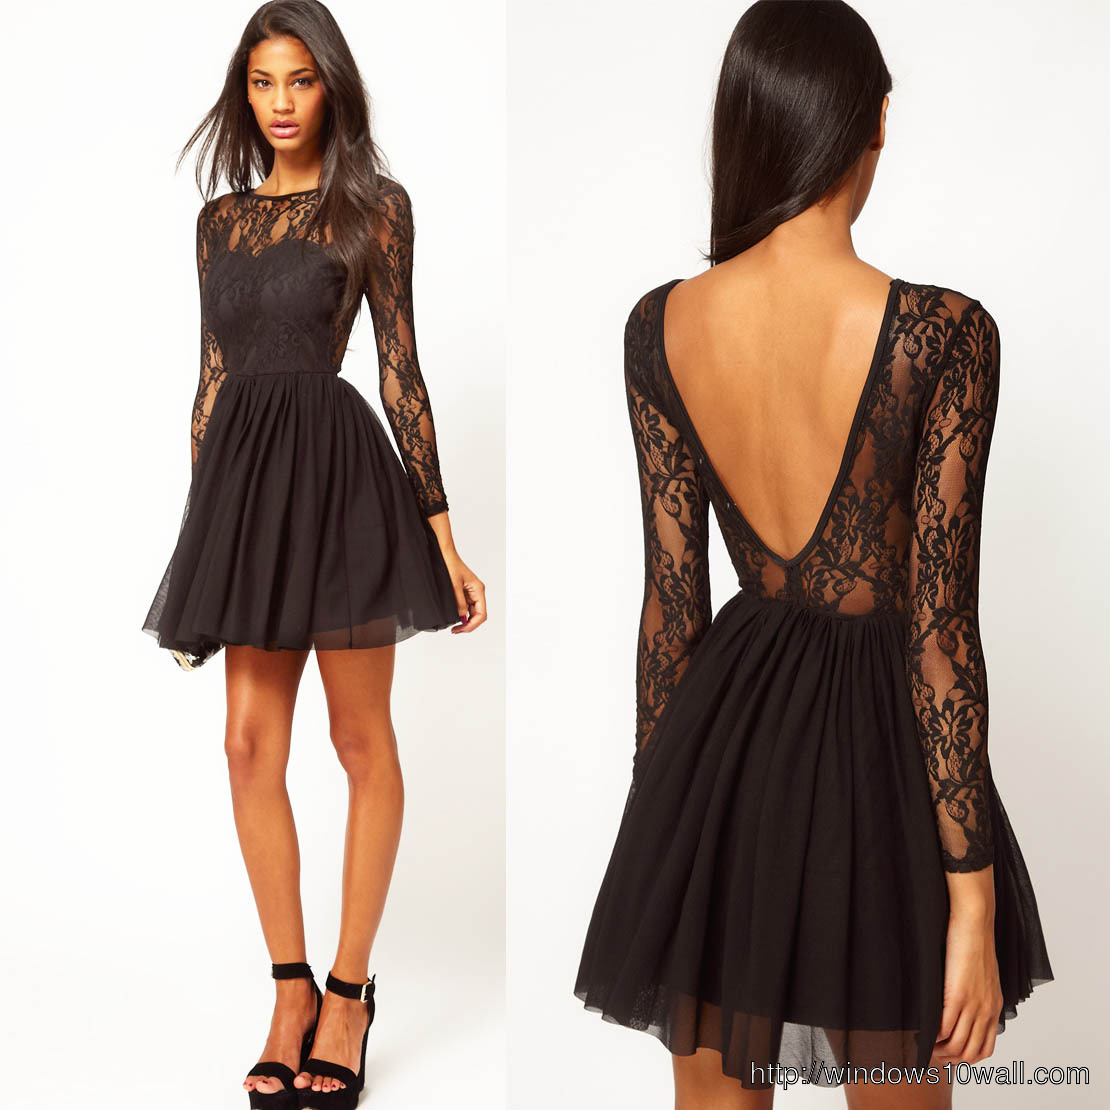 short-prom-dresses-with-sleeves-background-wallpaper